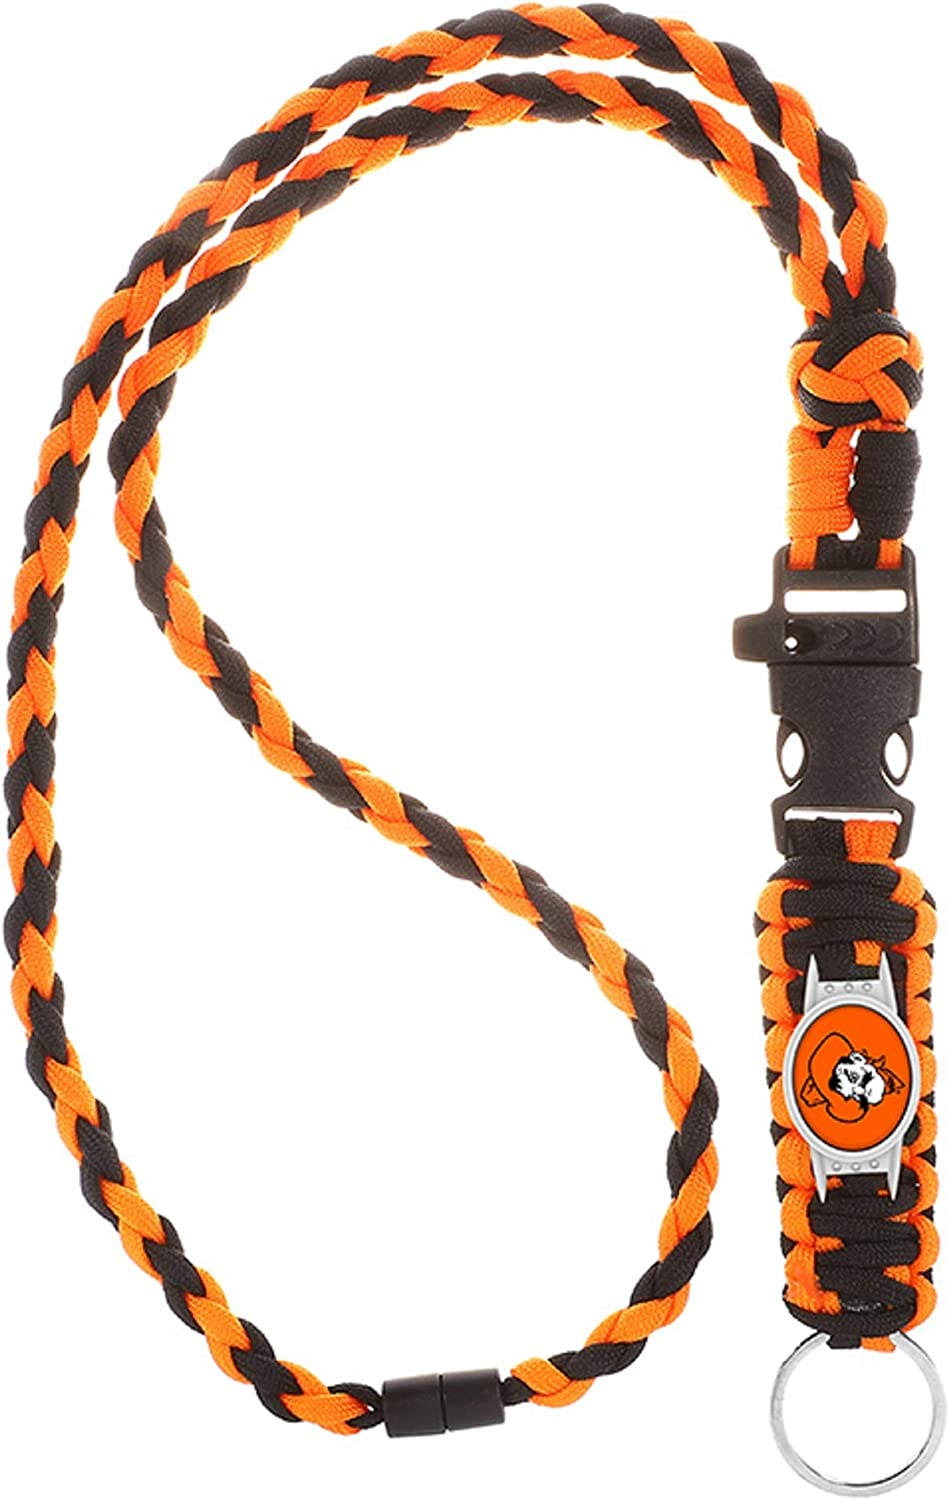 Swamp Fox Oklahoma State Cowboys Paracord Lanyard with Team Charm Neck Clasp and Keychain Release/…